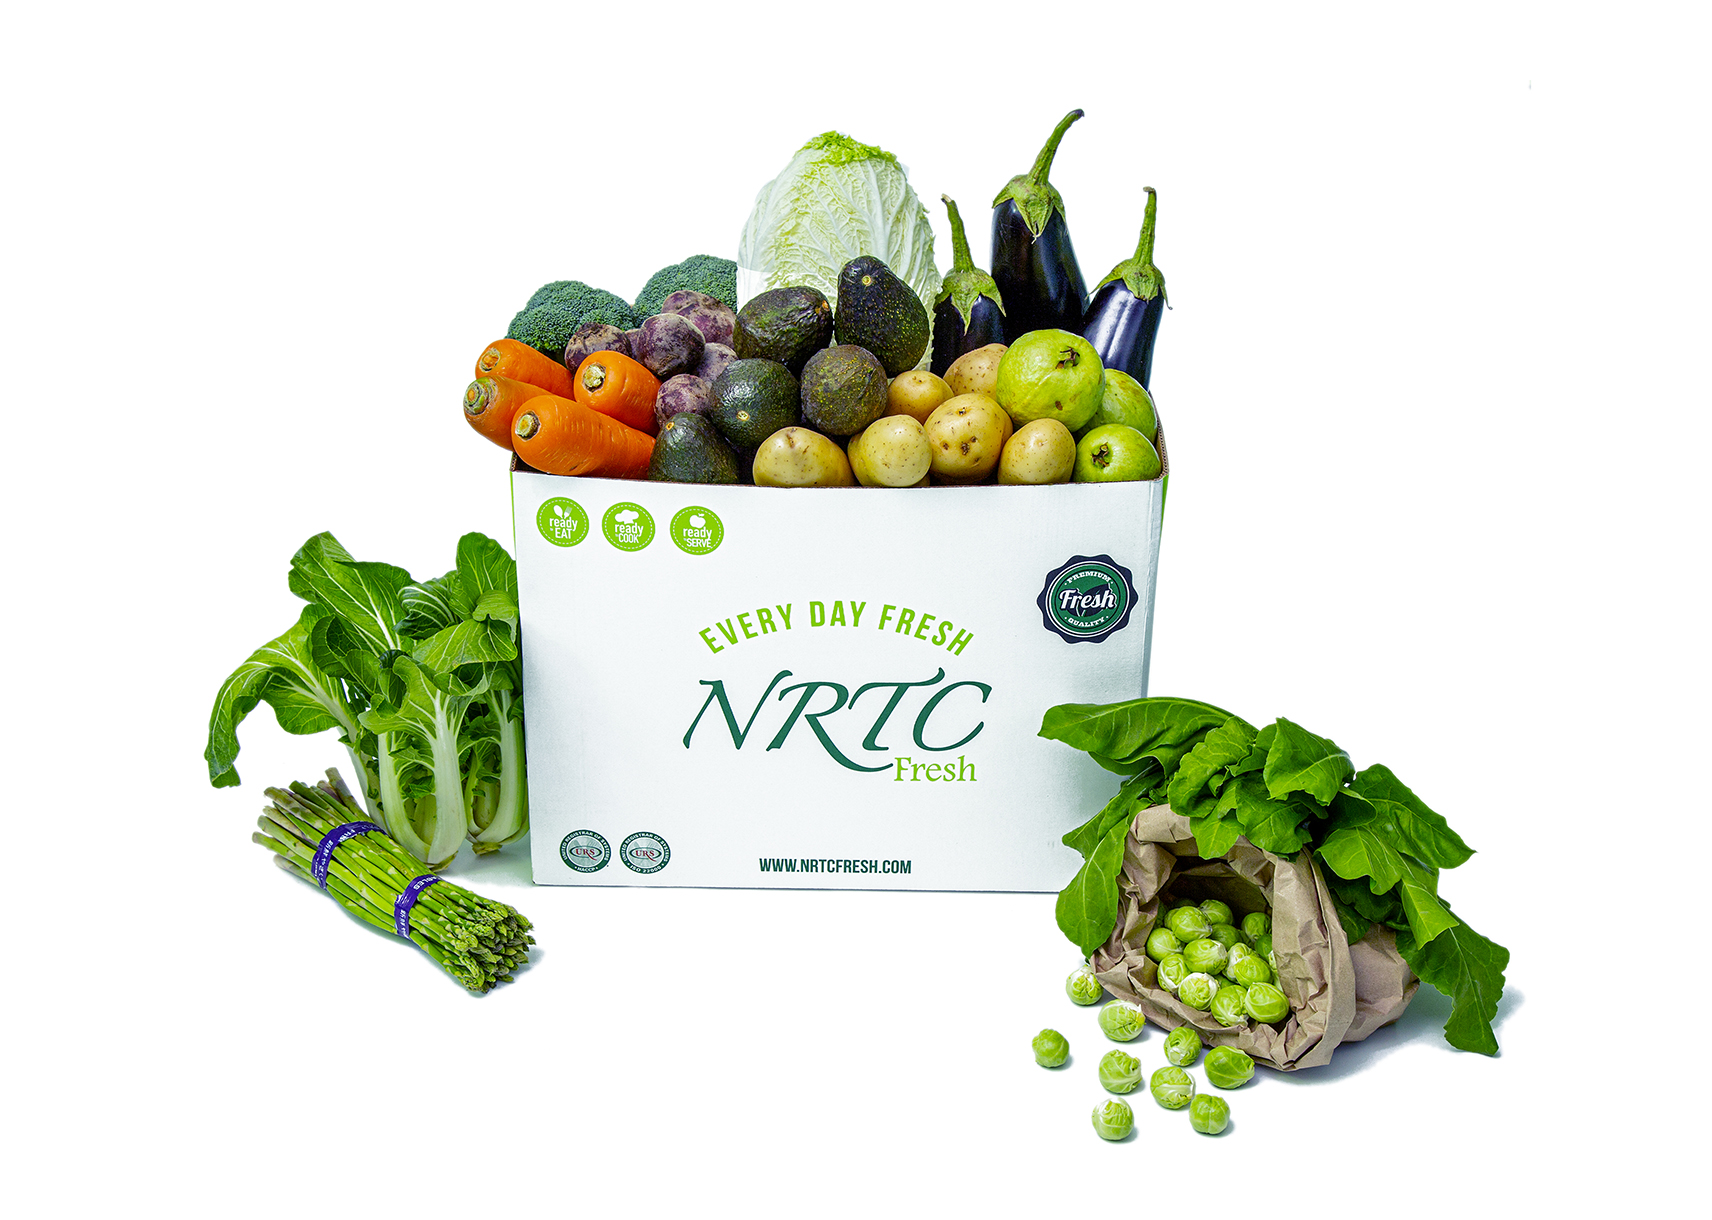 NRTC Fresh to import 78 million AED worth of fruits and vegetable in the next 3 months